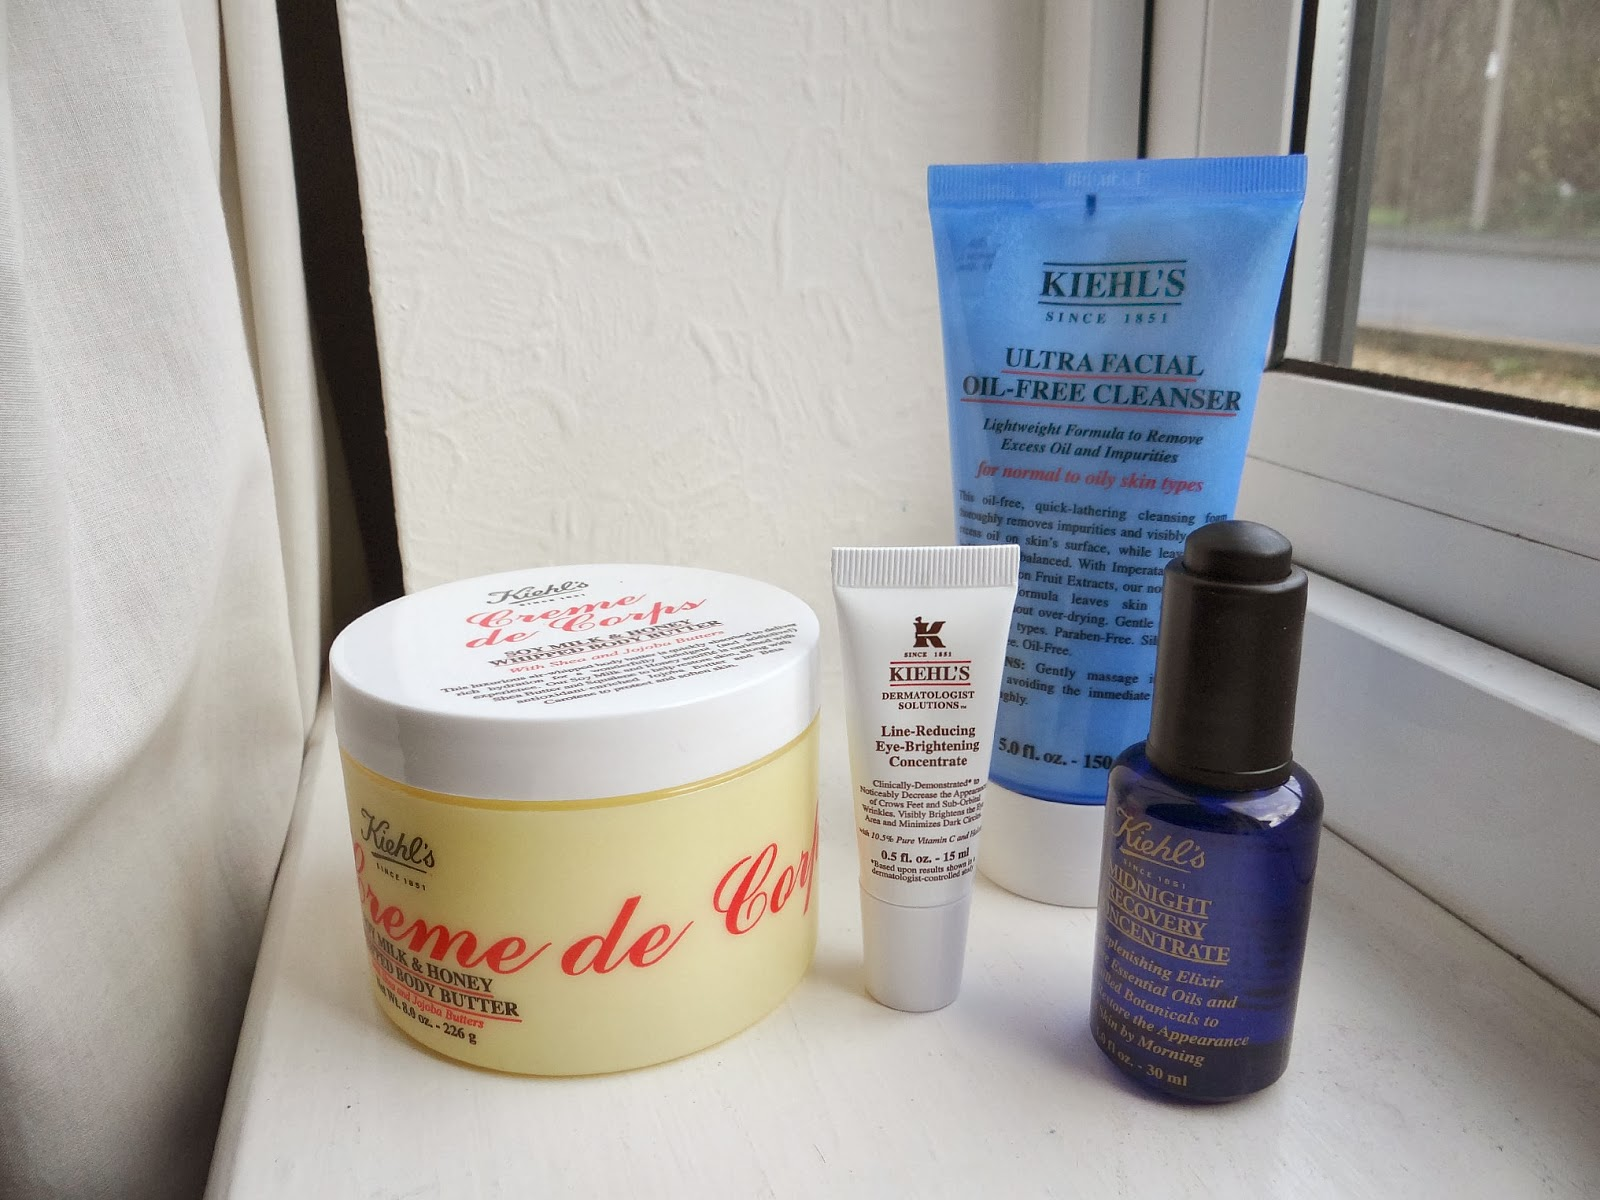 Kiehl's Top to Toe Consultation, Kiehl's Skin Care, Kiehl's Cosmetics